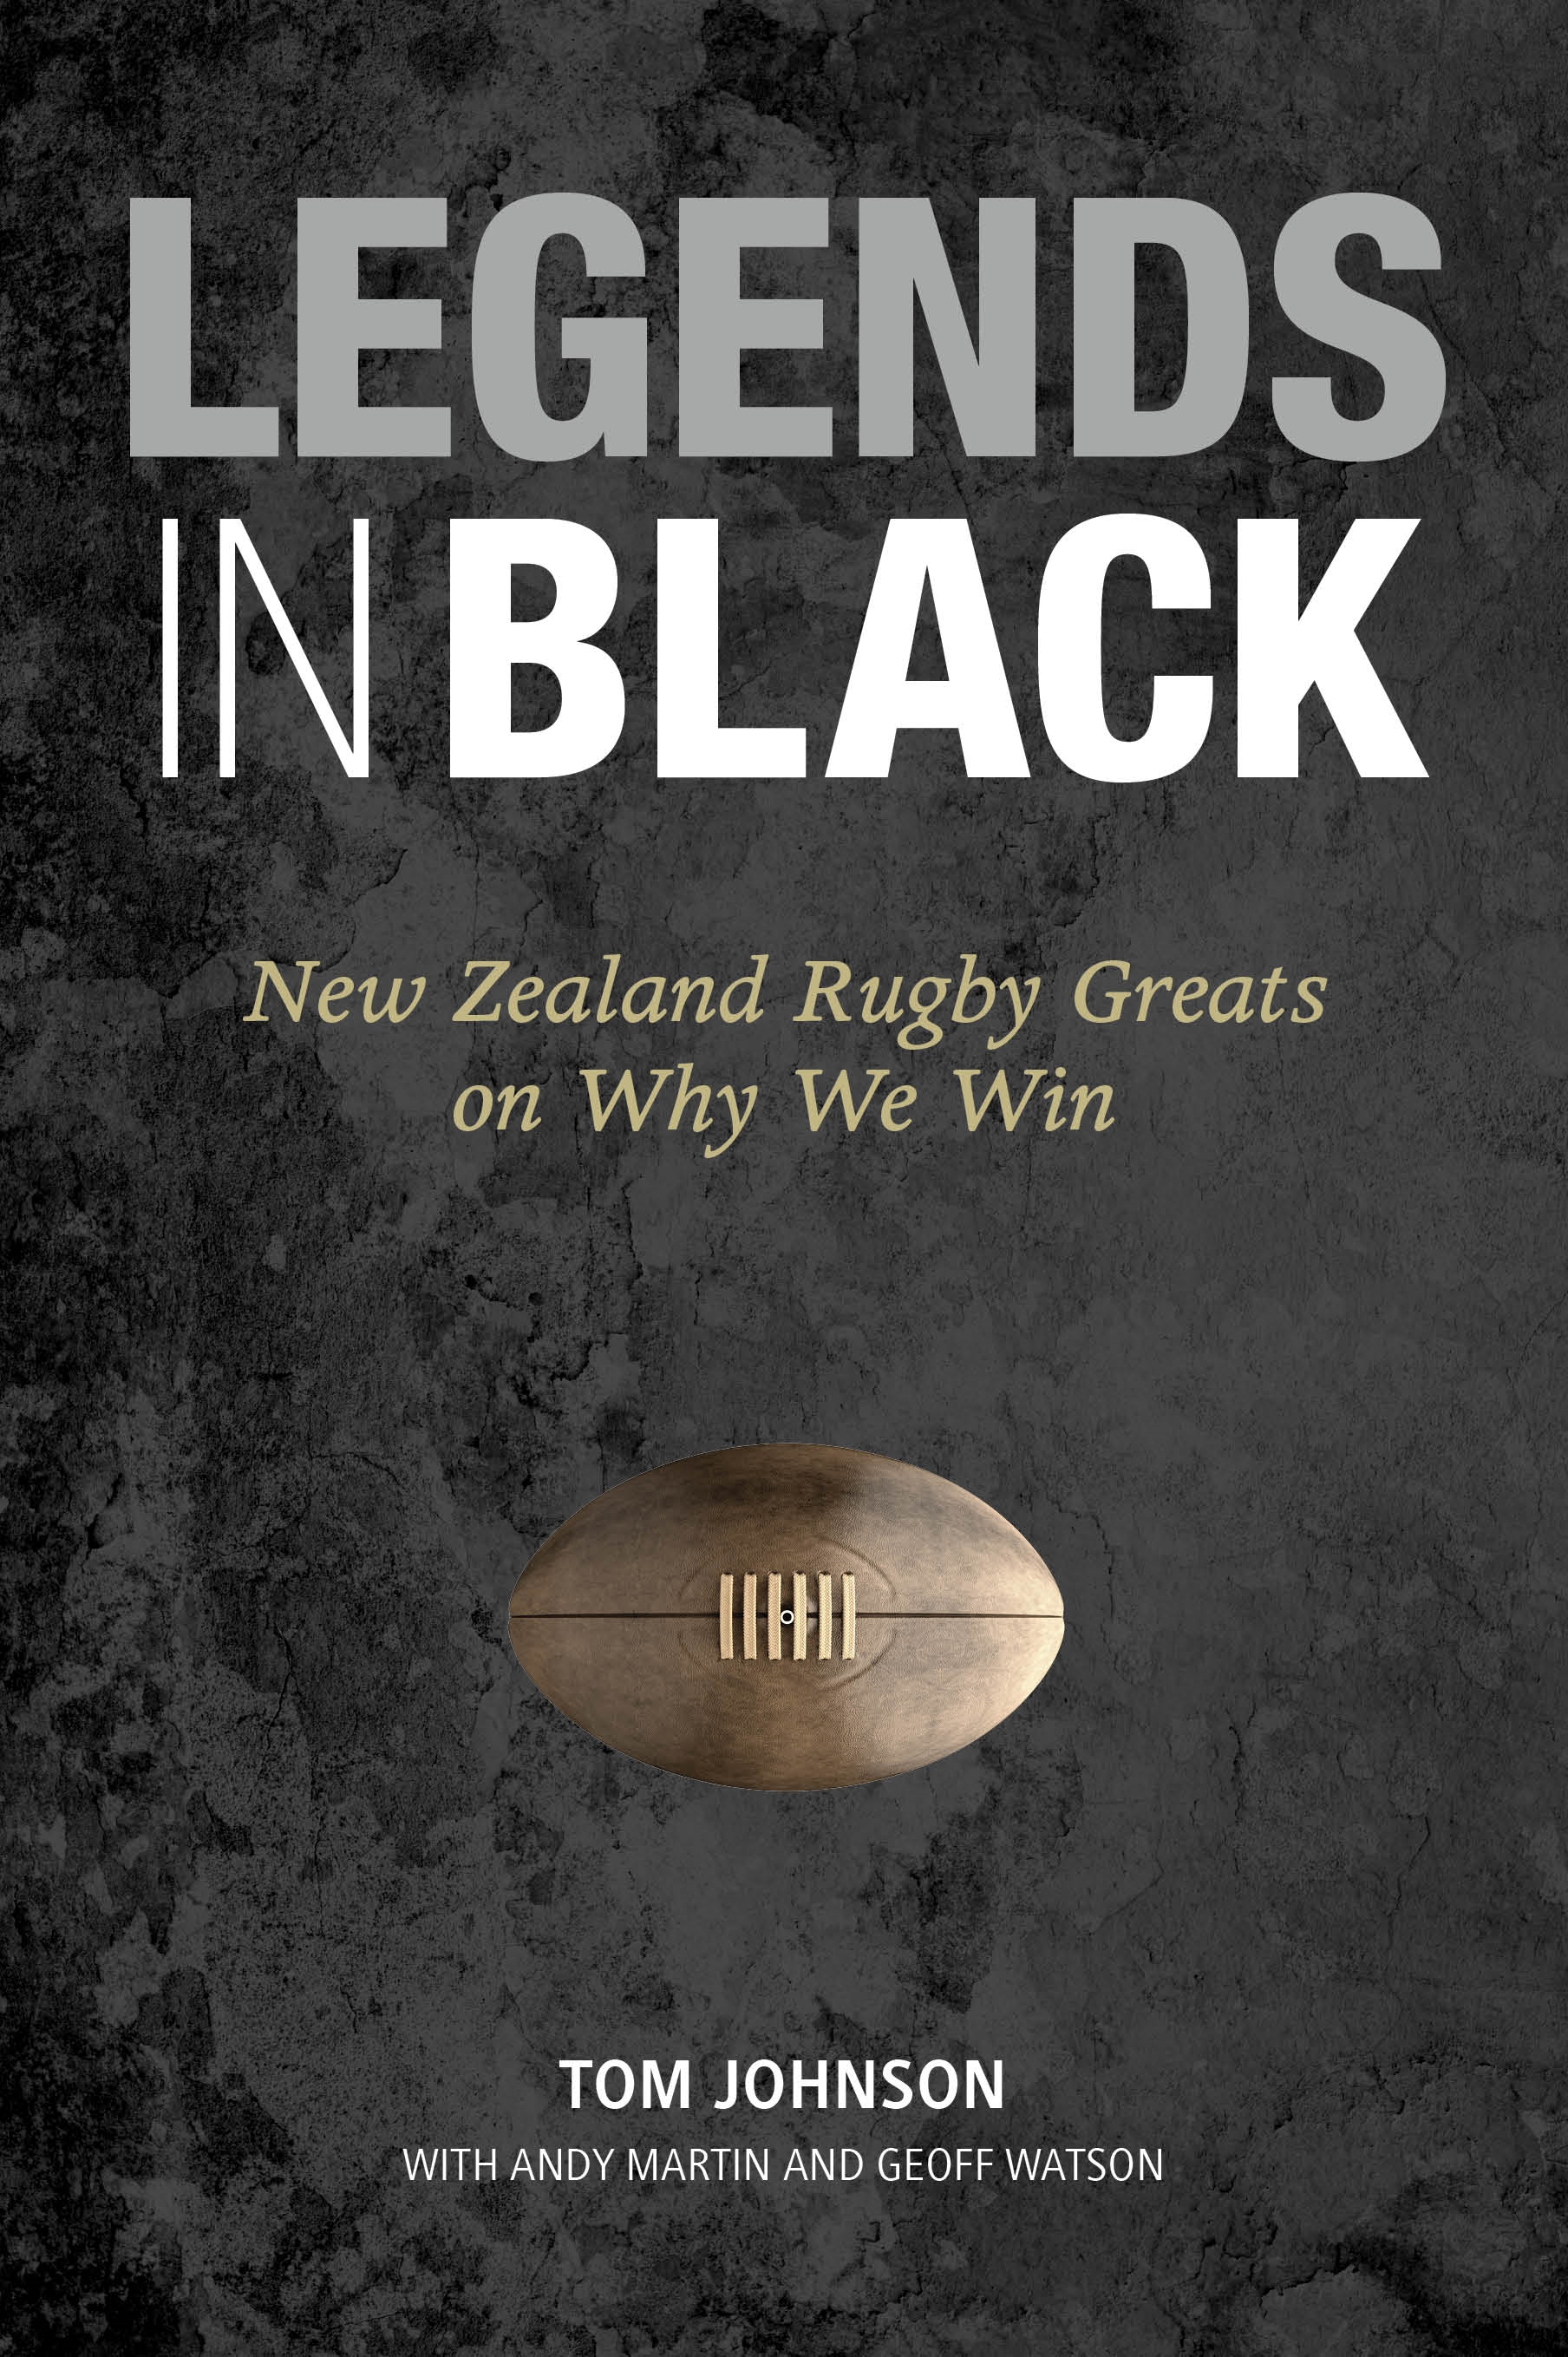 Book Covers Nz ~ Legends in black new zealand rugby greats on why we win